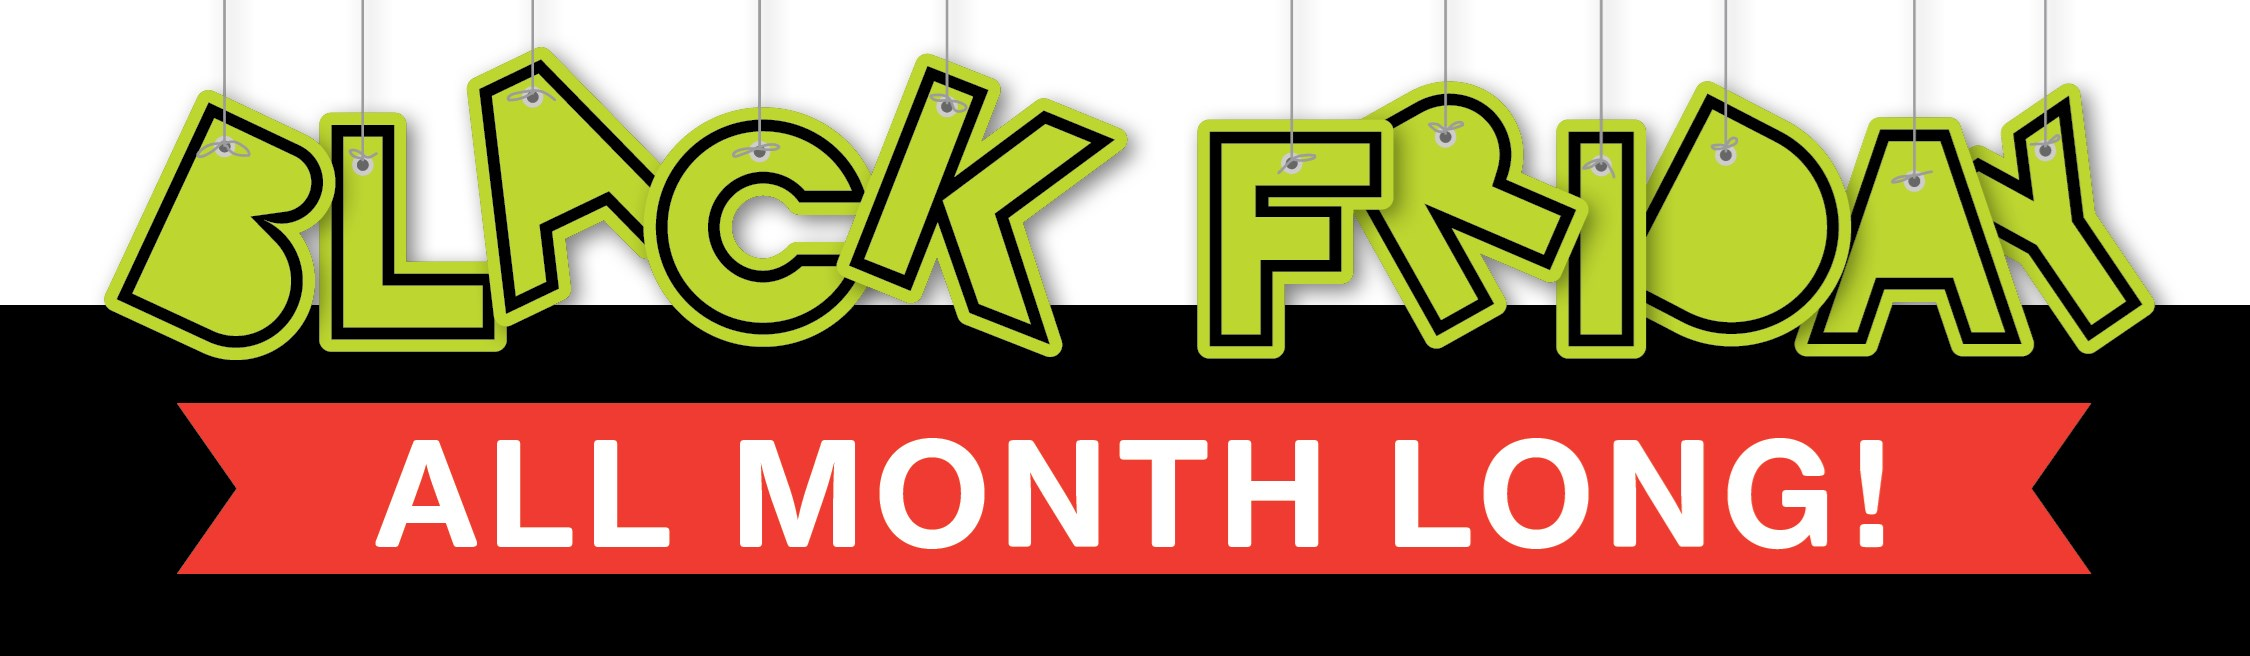 Black Friday all month long!